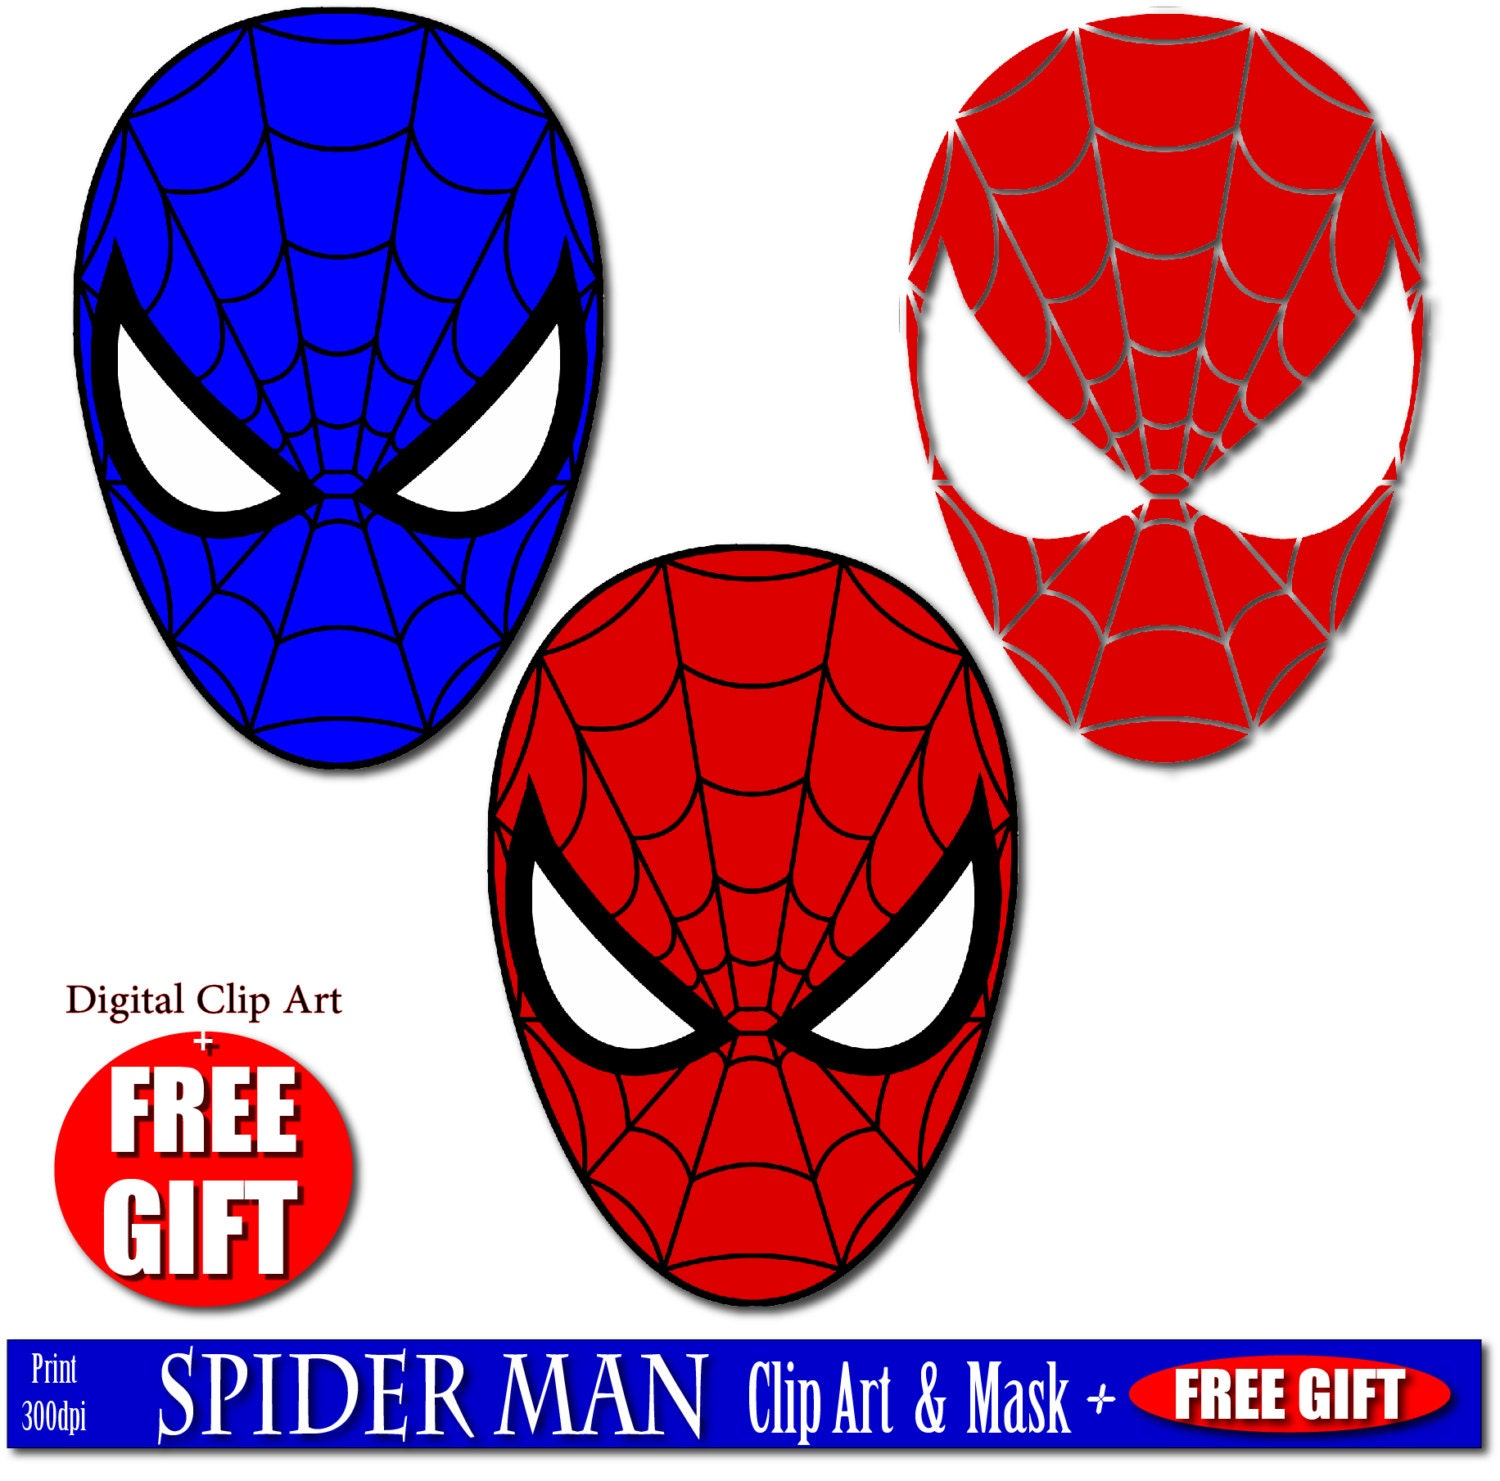 digital clip art spiderman mask superhero party masks clipart rh etsystudio com free spiderman vector clipart free spiderman clipart